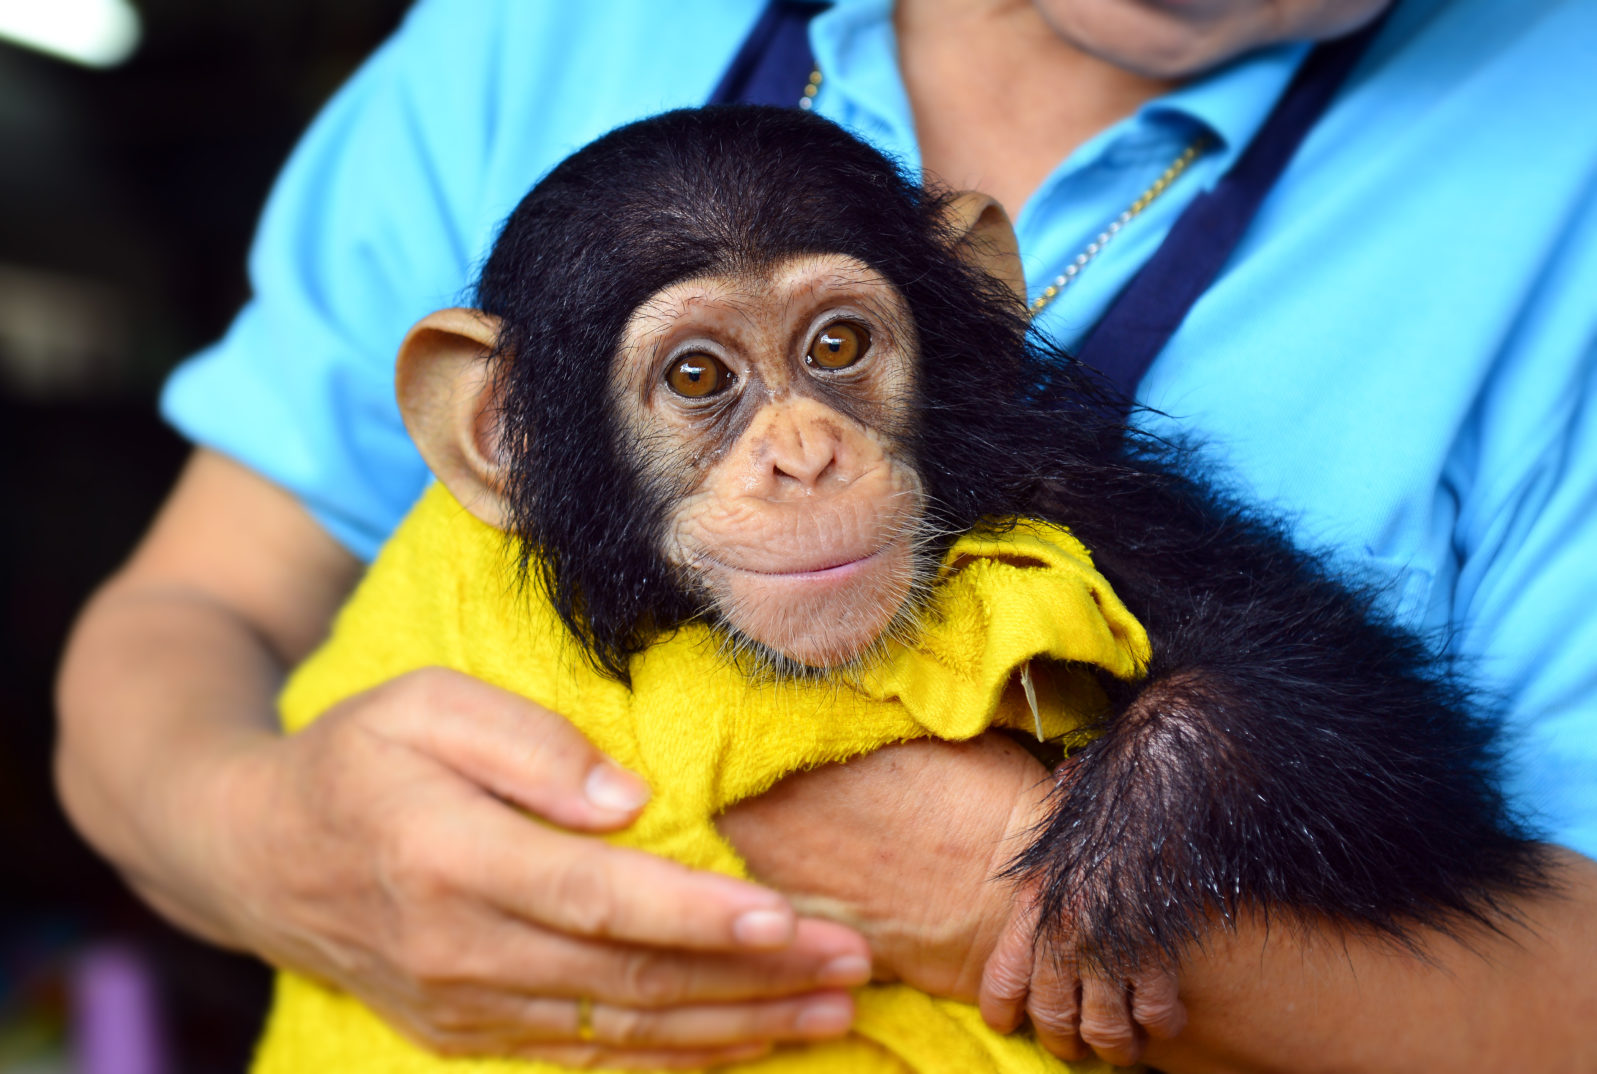 baby chimpanzee ape at the zoo.